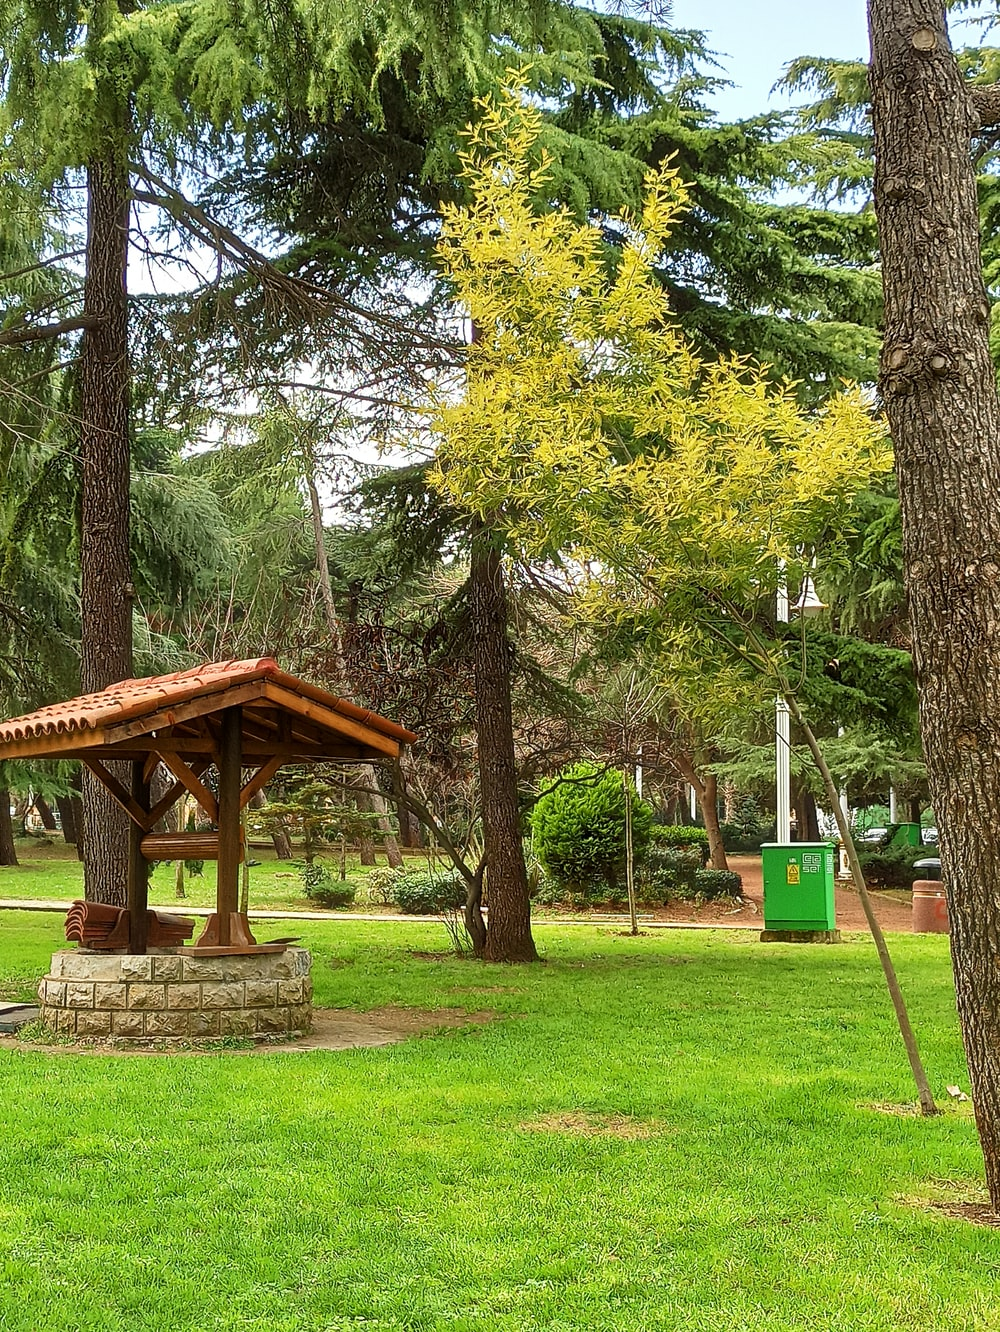 brown wooden gazebo in the middle of green grass field